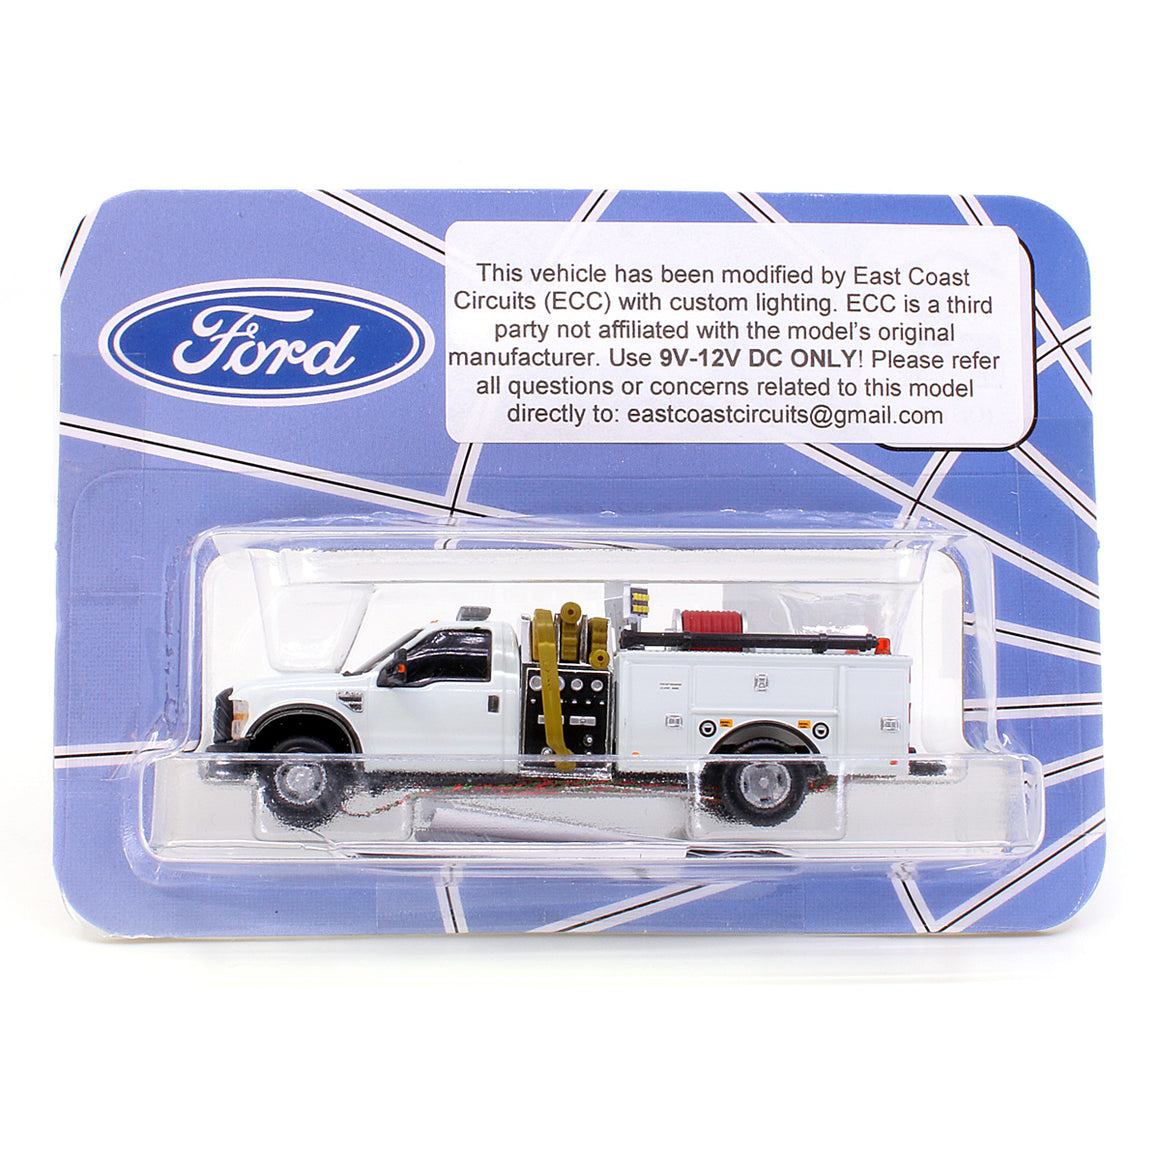 HO Scale: Lighted Ford F-550 - Mini Pumper Fire Truck - White